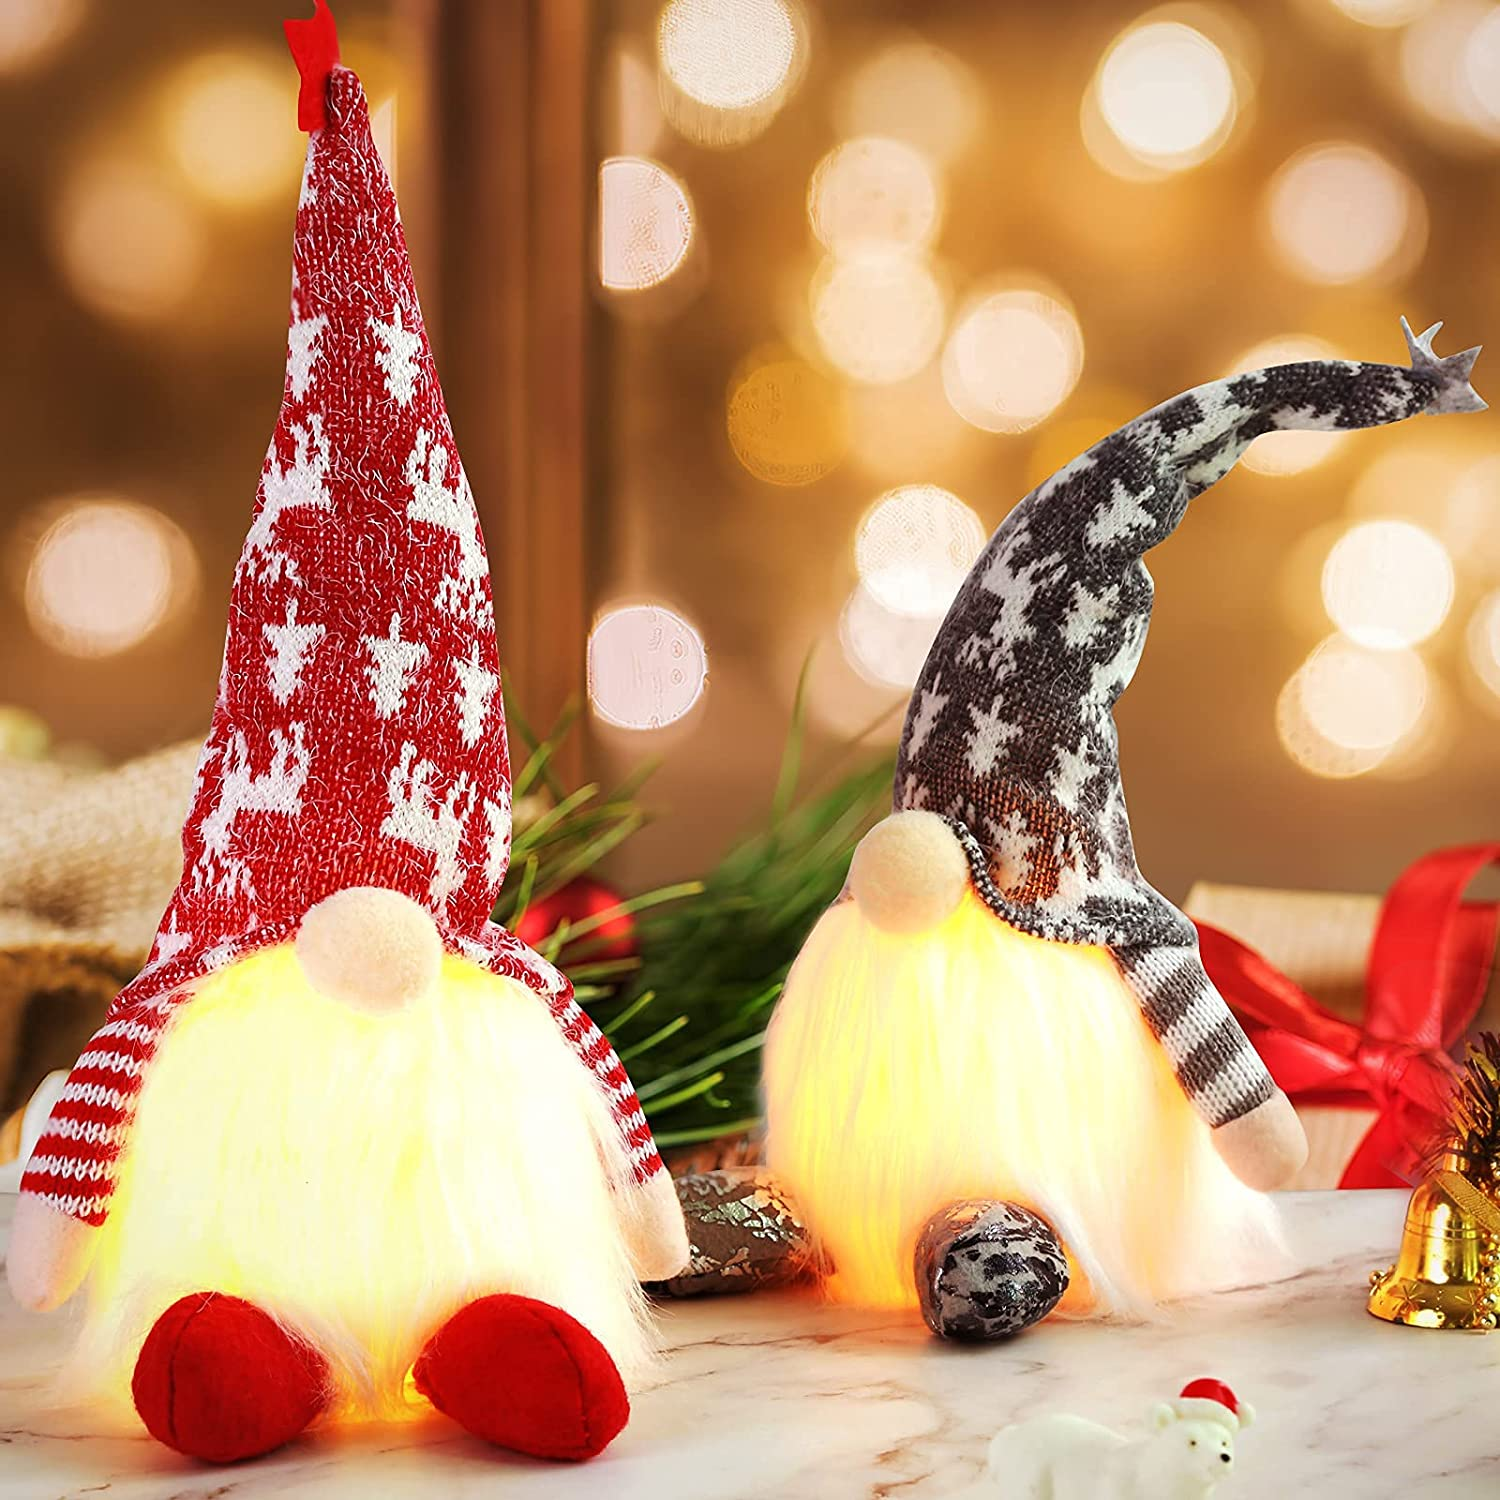 Plush Christmas Gnomes - Cute Holiday Decorations with LED Lights - Swedish Tomte Stuffed Toy Decor with High Hat, Star & Long White Beard - Lighted Ornaments for Home & Office - Battery NOT Included